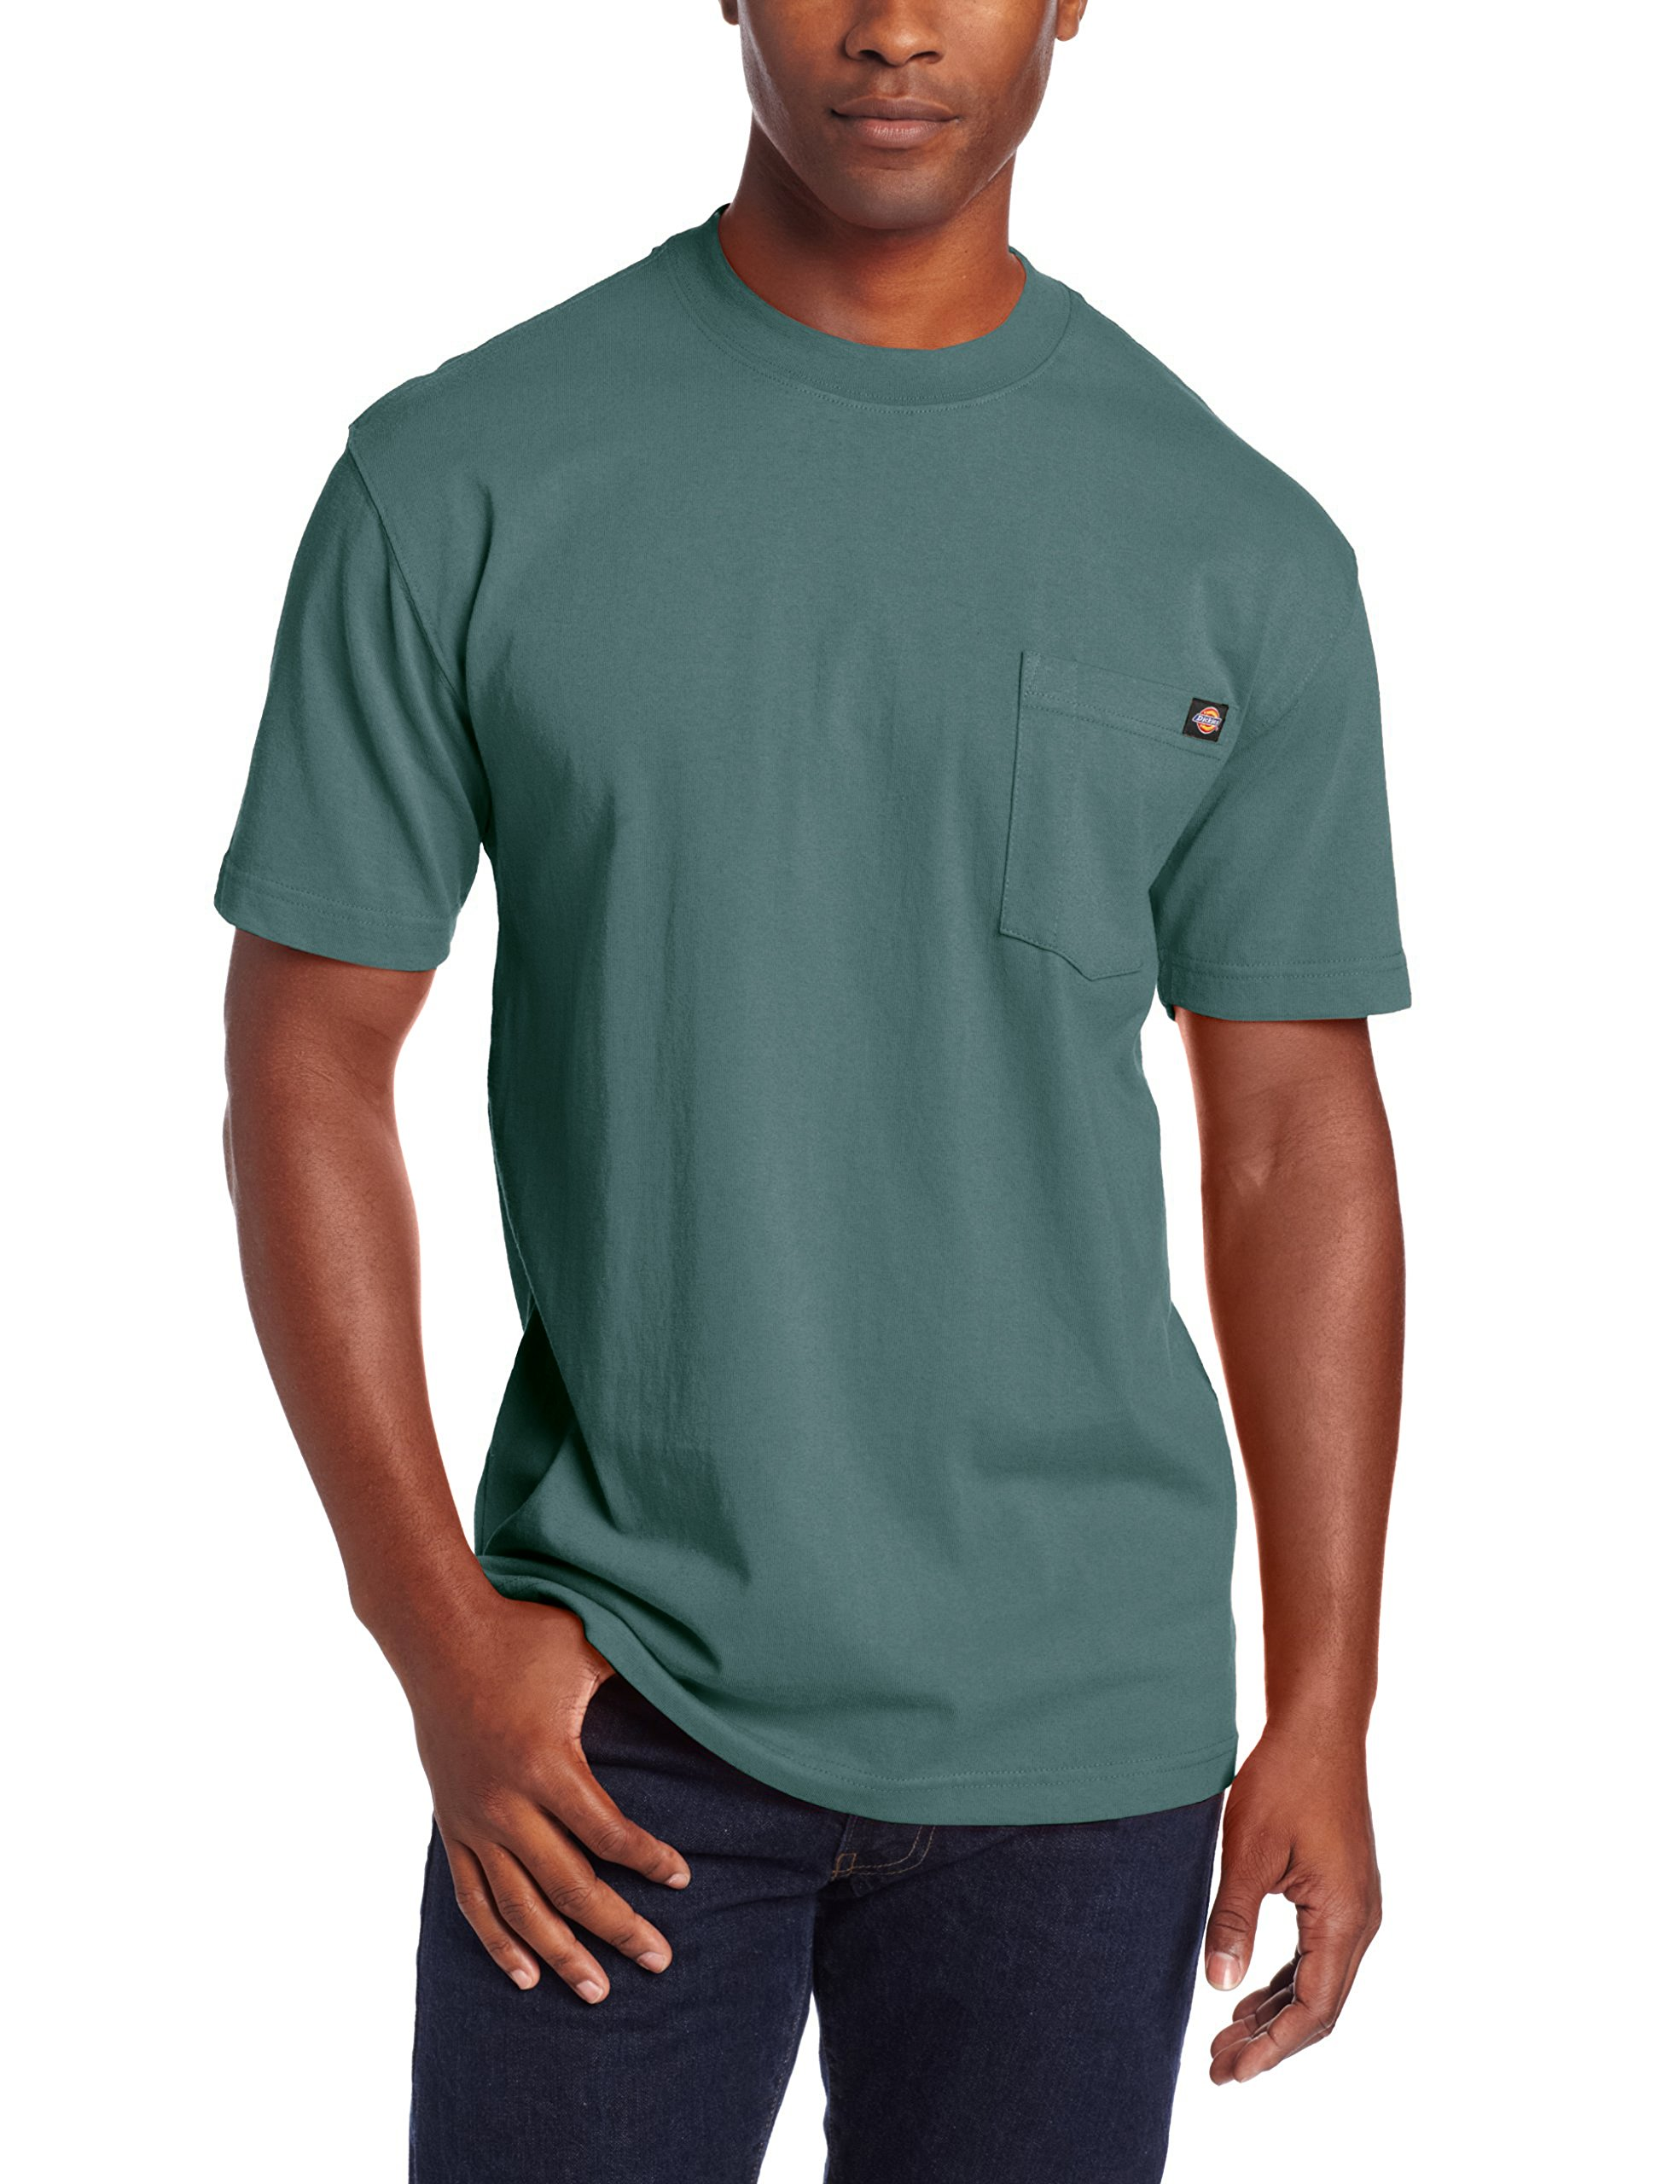 Dickie's Men's Heavyweight Crew Neck Short Sleeve Tee Big-tall,Lincoln Green,3X-Large Tall by Dickies